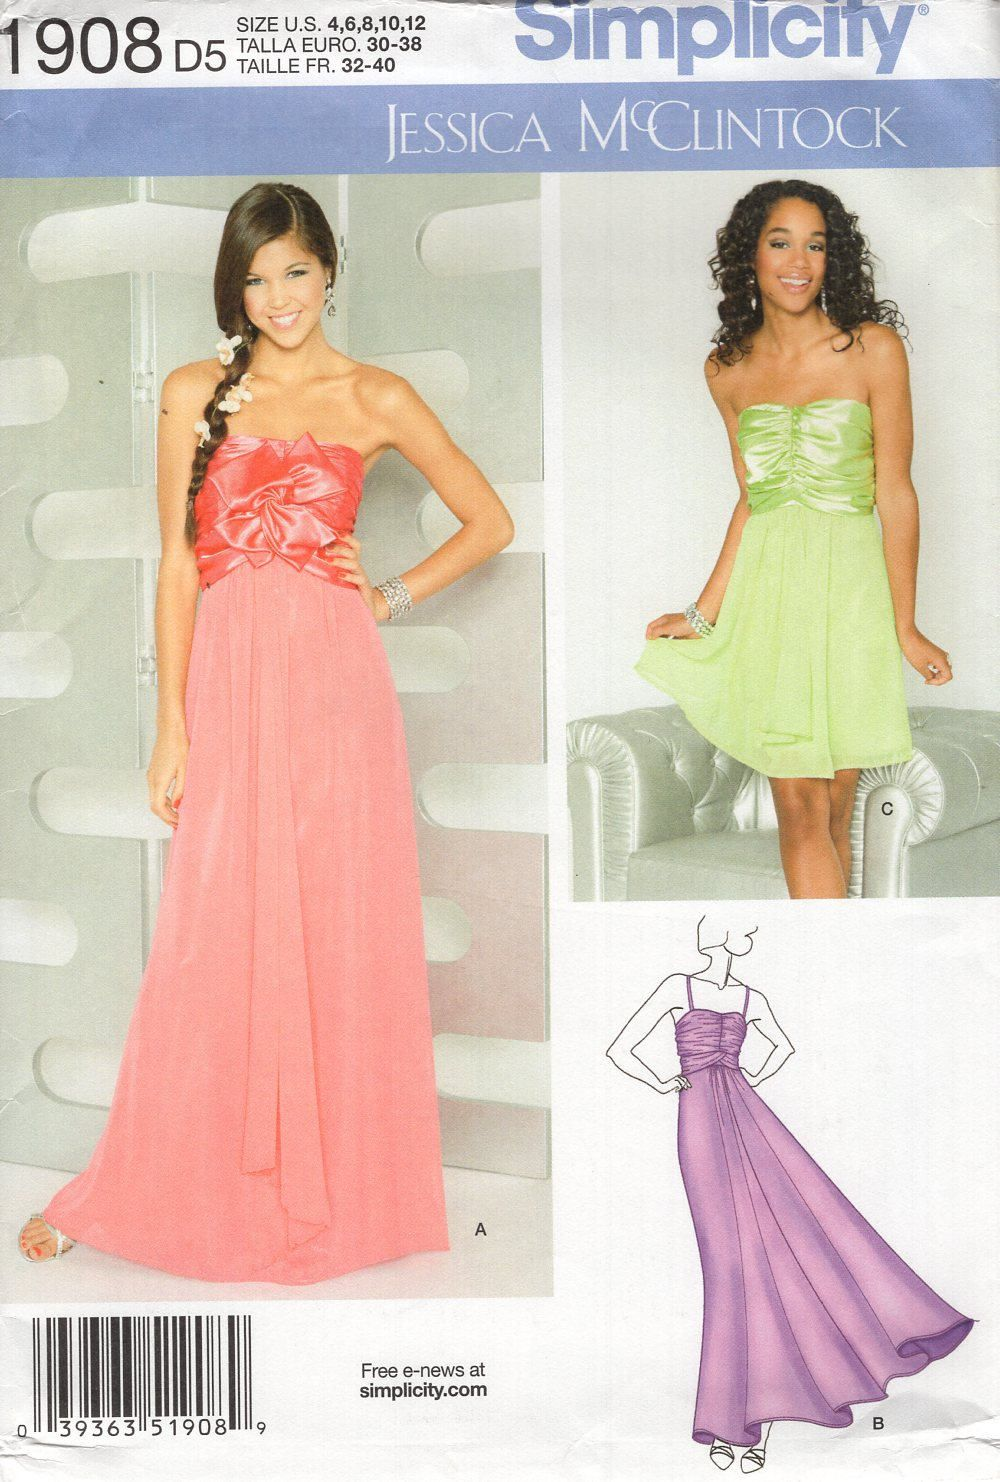 Free us ship simplicity jessica mcclintock prom evening length